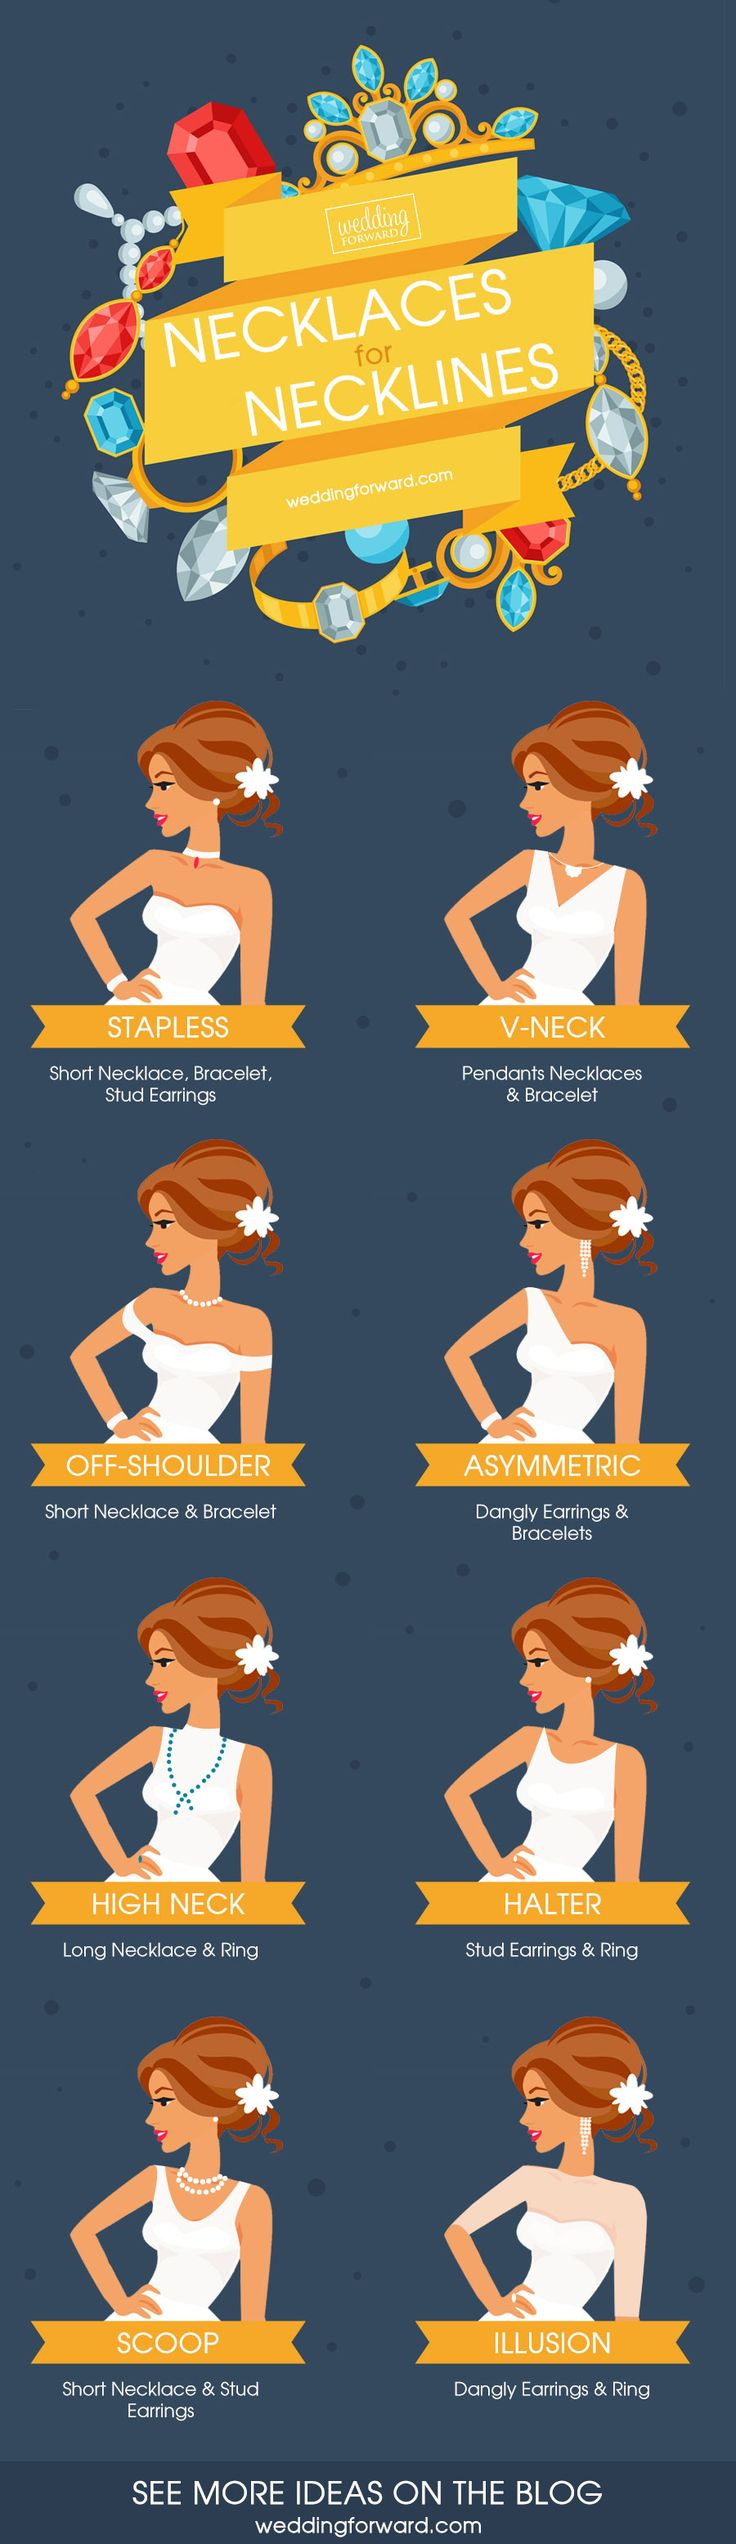 12 Wedding Dress Infographics To Make Your Shopping Easier ❤️ The most useful wedding dress infographics that will help you to make the right choice. Wedding jewelry vocabulary for dresses. See more: http://www.weddingforward.com/wedding-dress-infographics/ #wedding #dresses #infographics